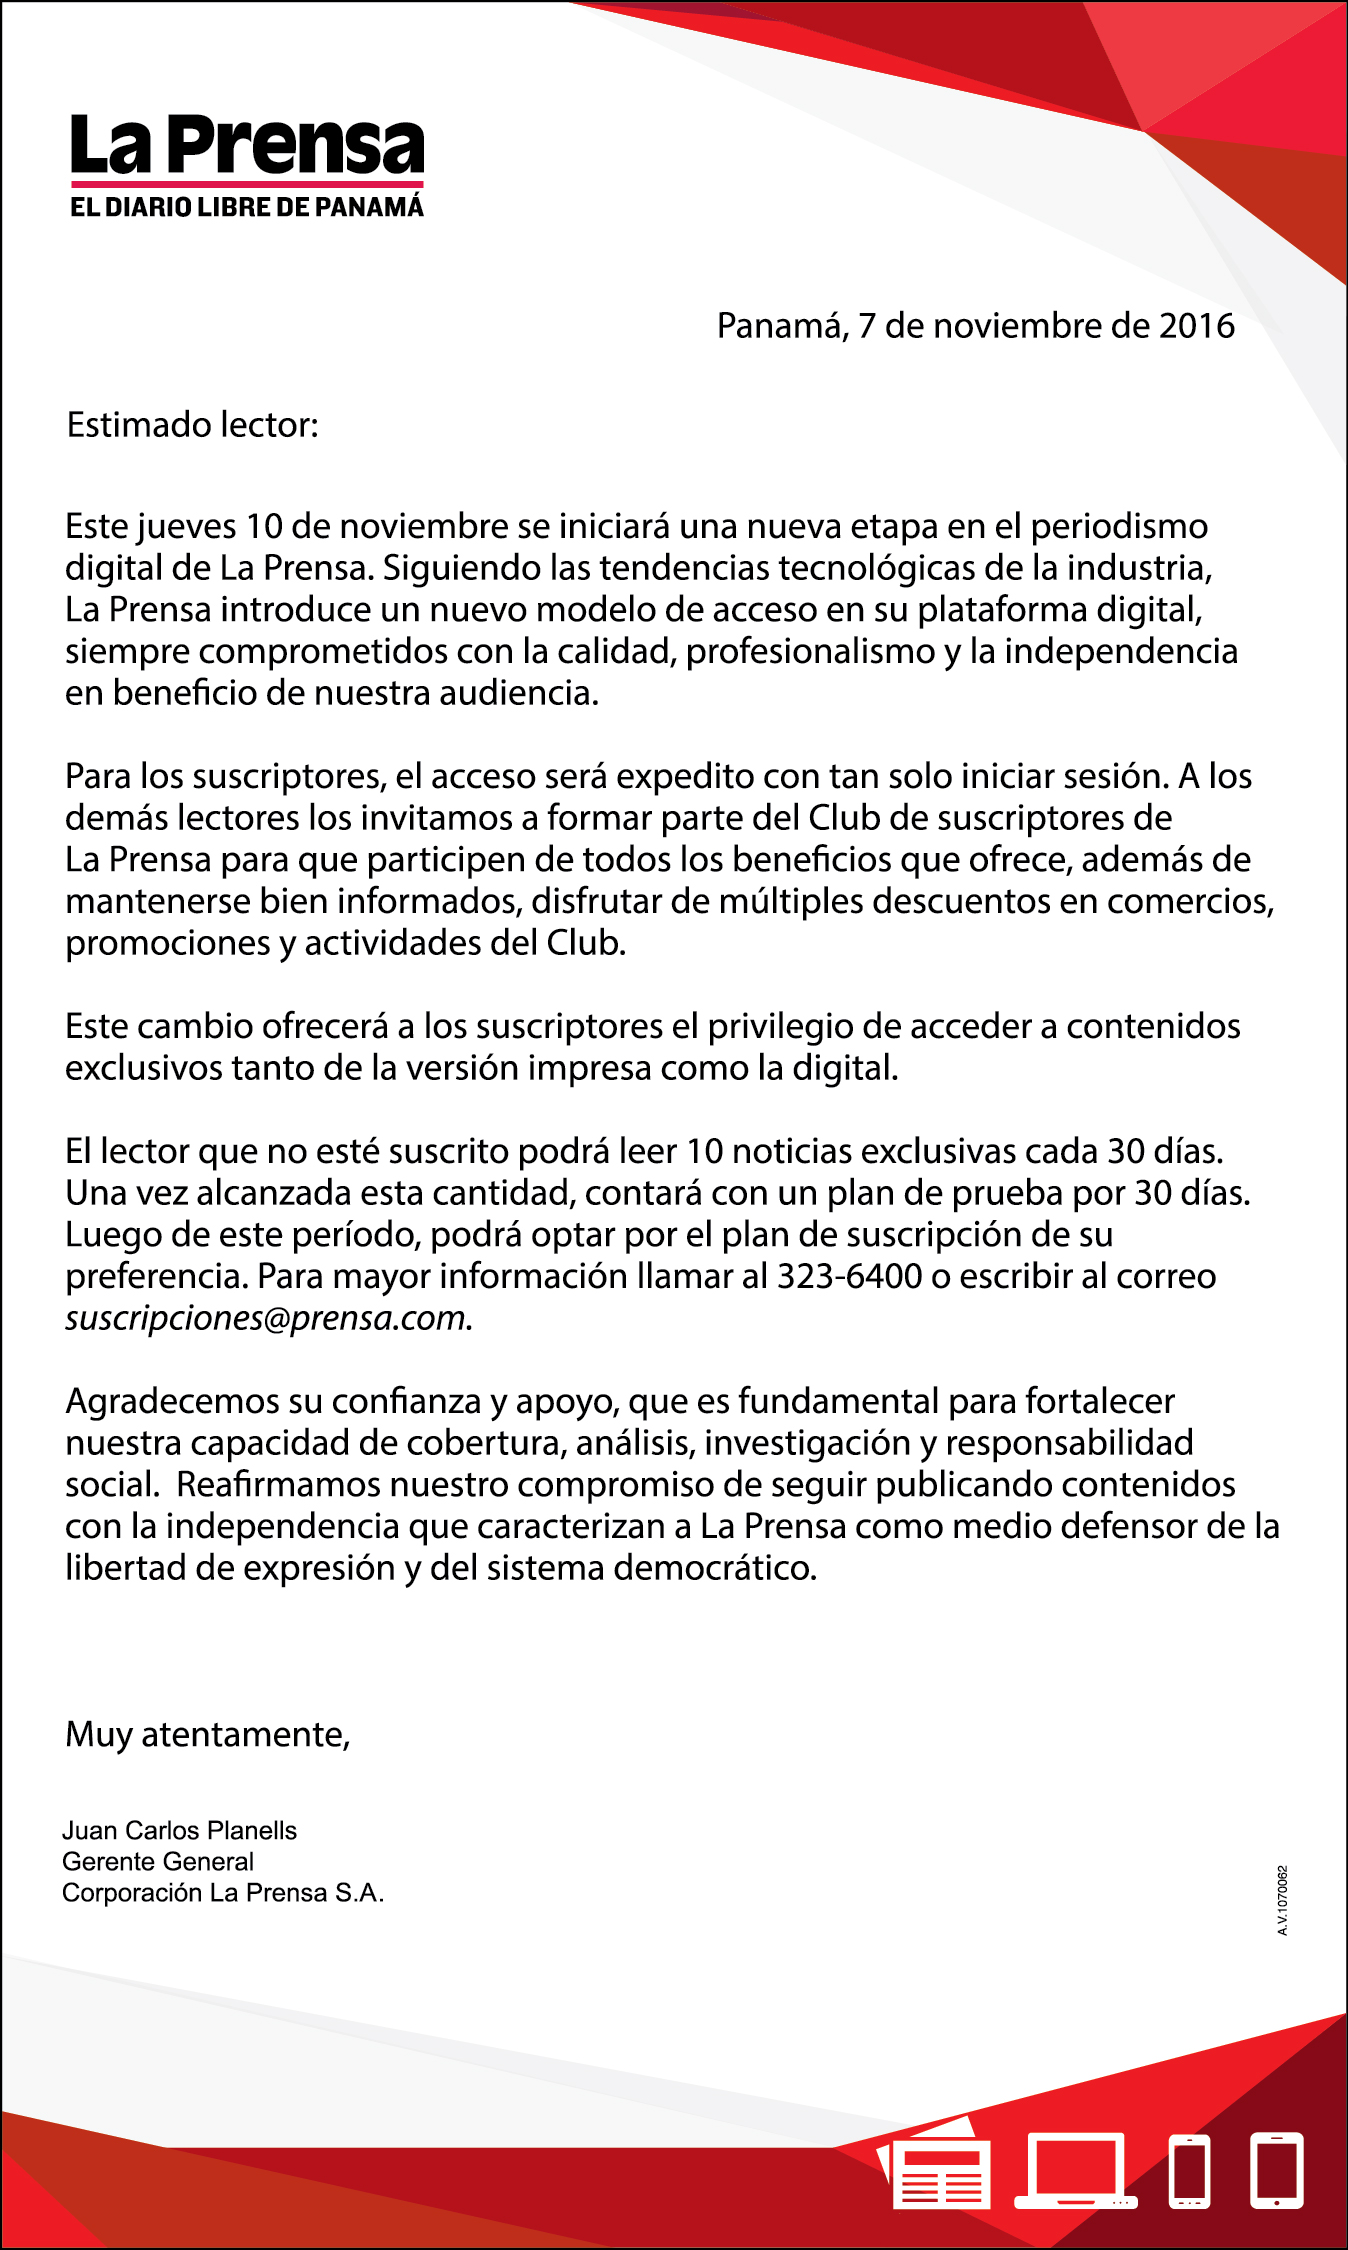 La Prensa Corporation Gm Announces The Launch Of A Pay Wall